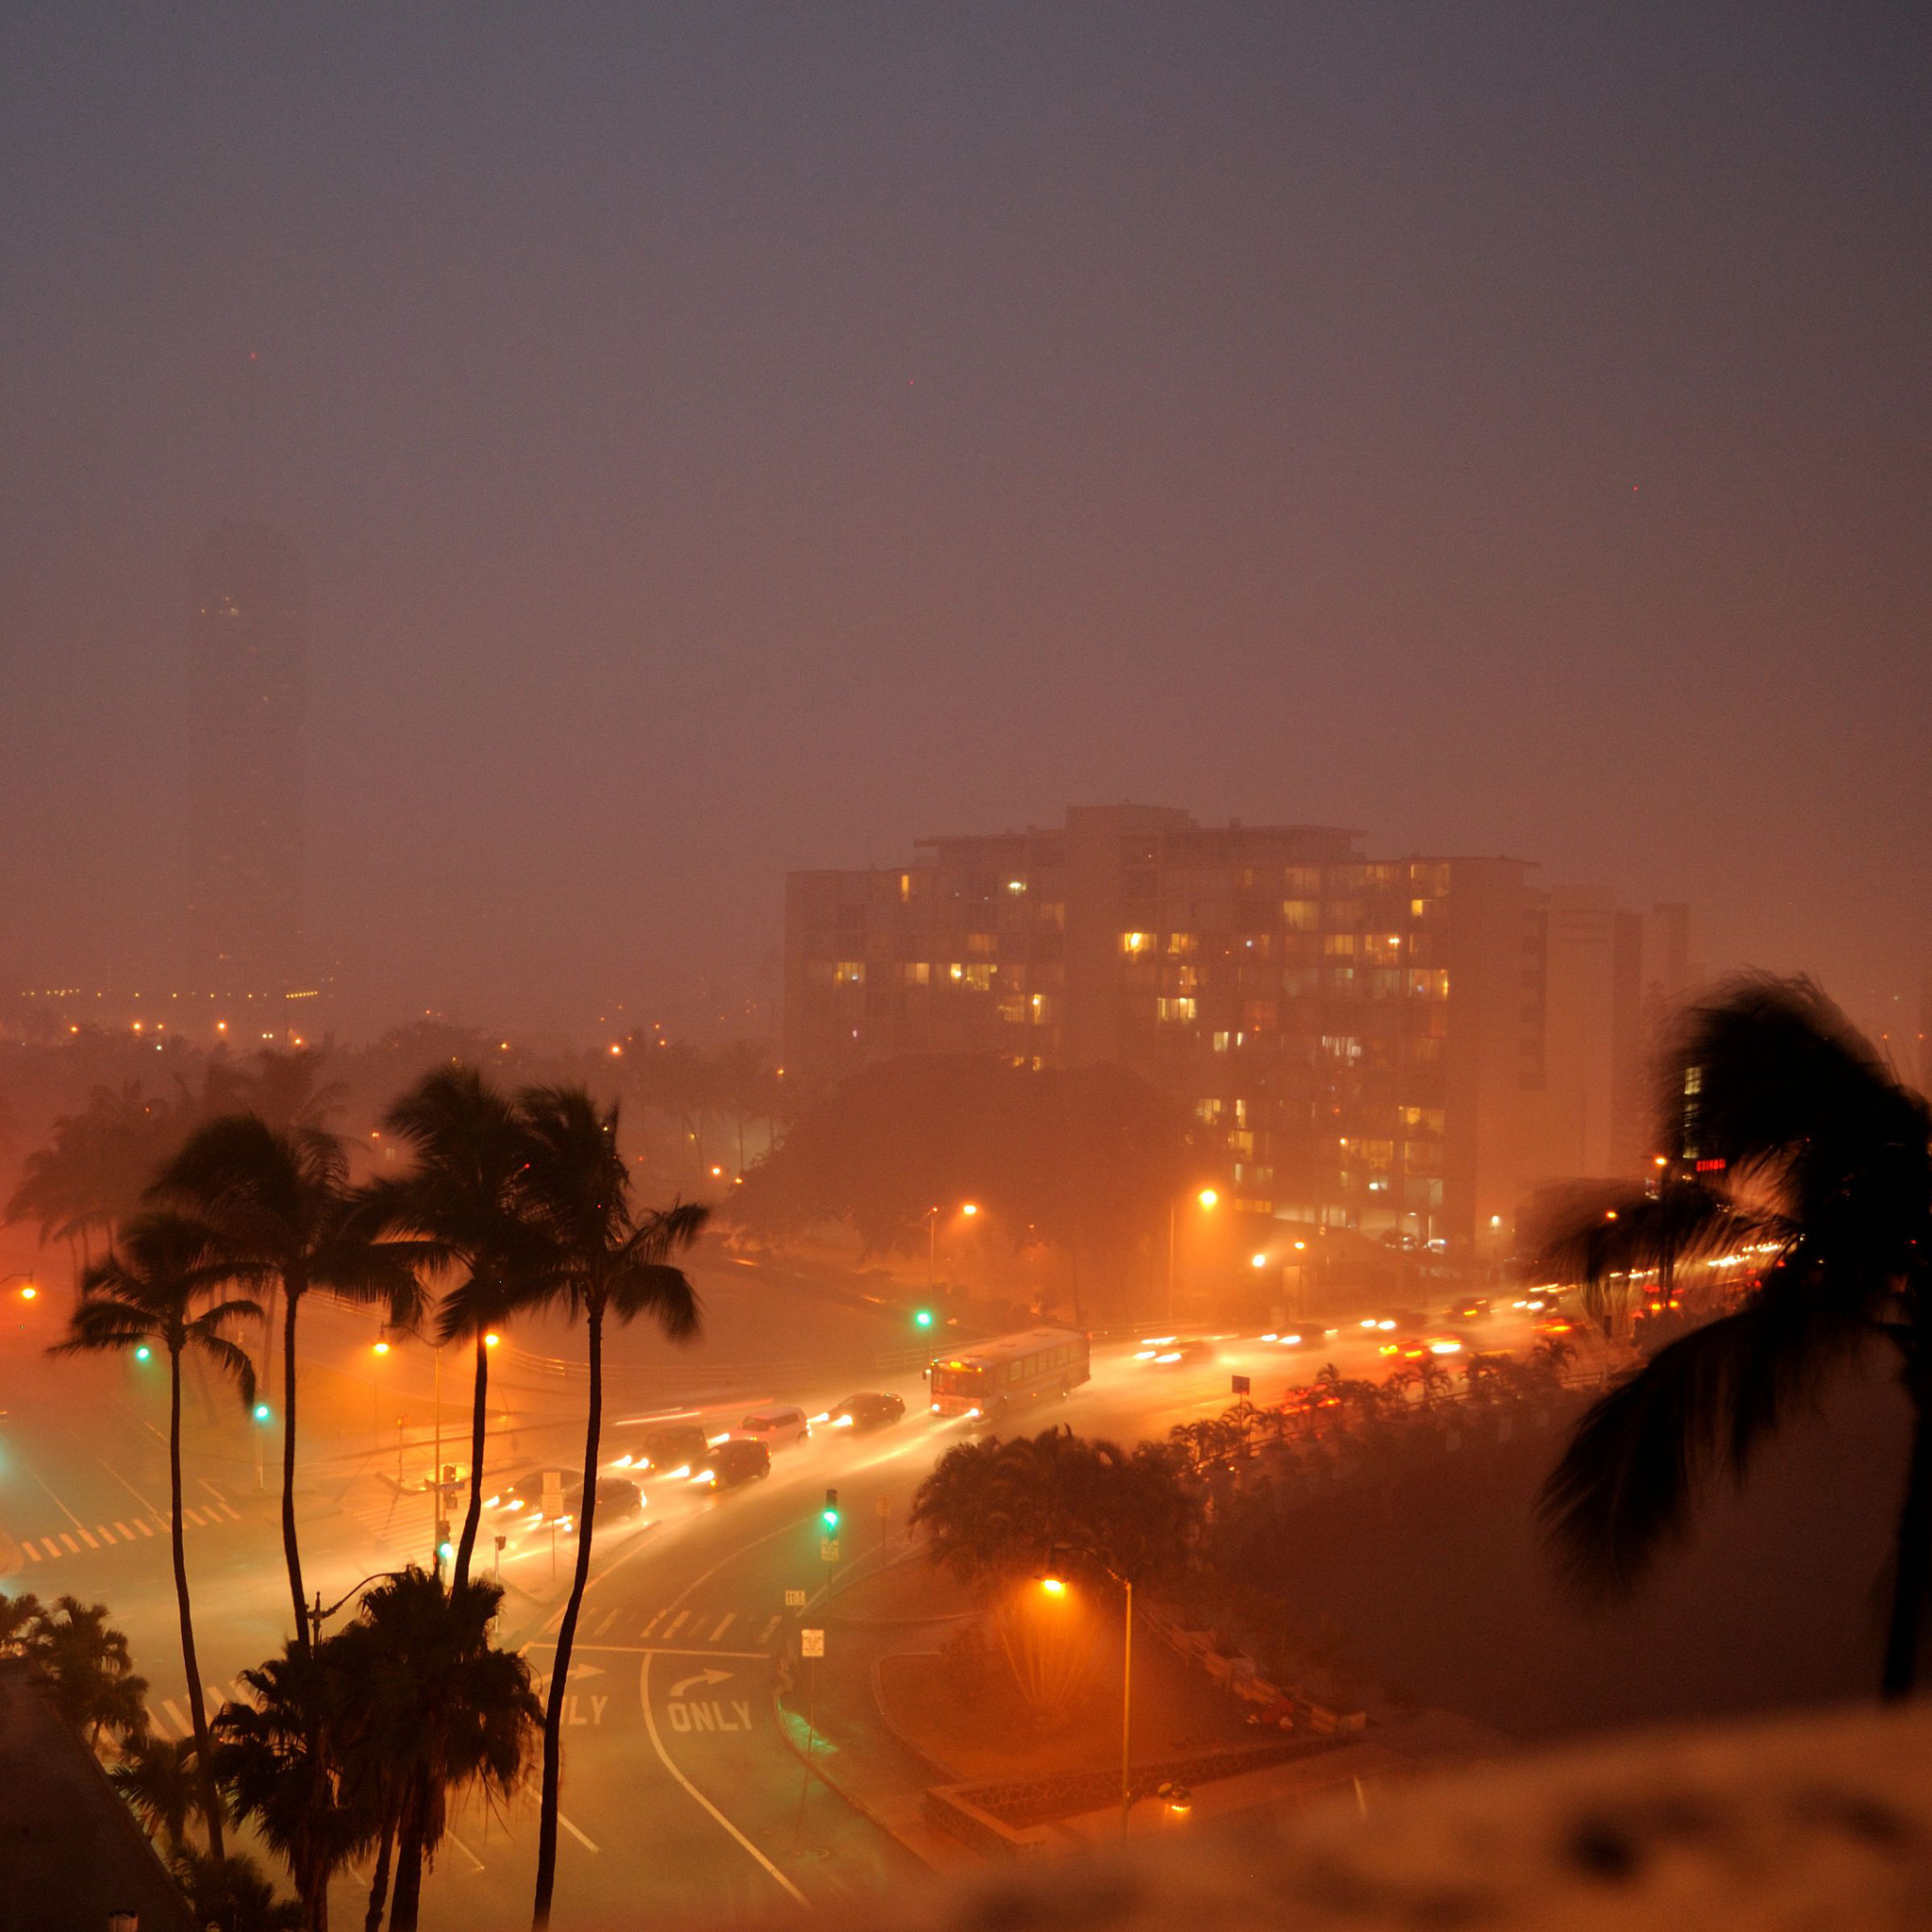 daniel ramirez - rainy tropical night city ipad wallpaper